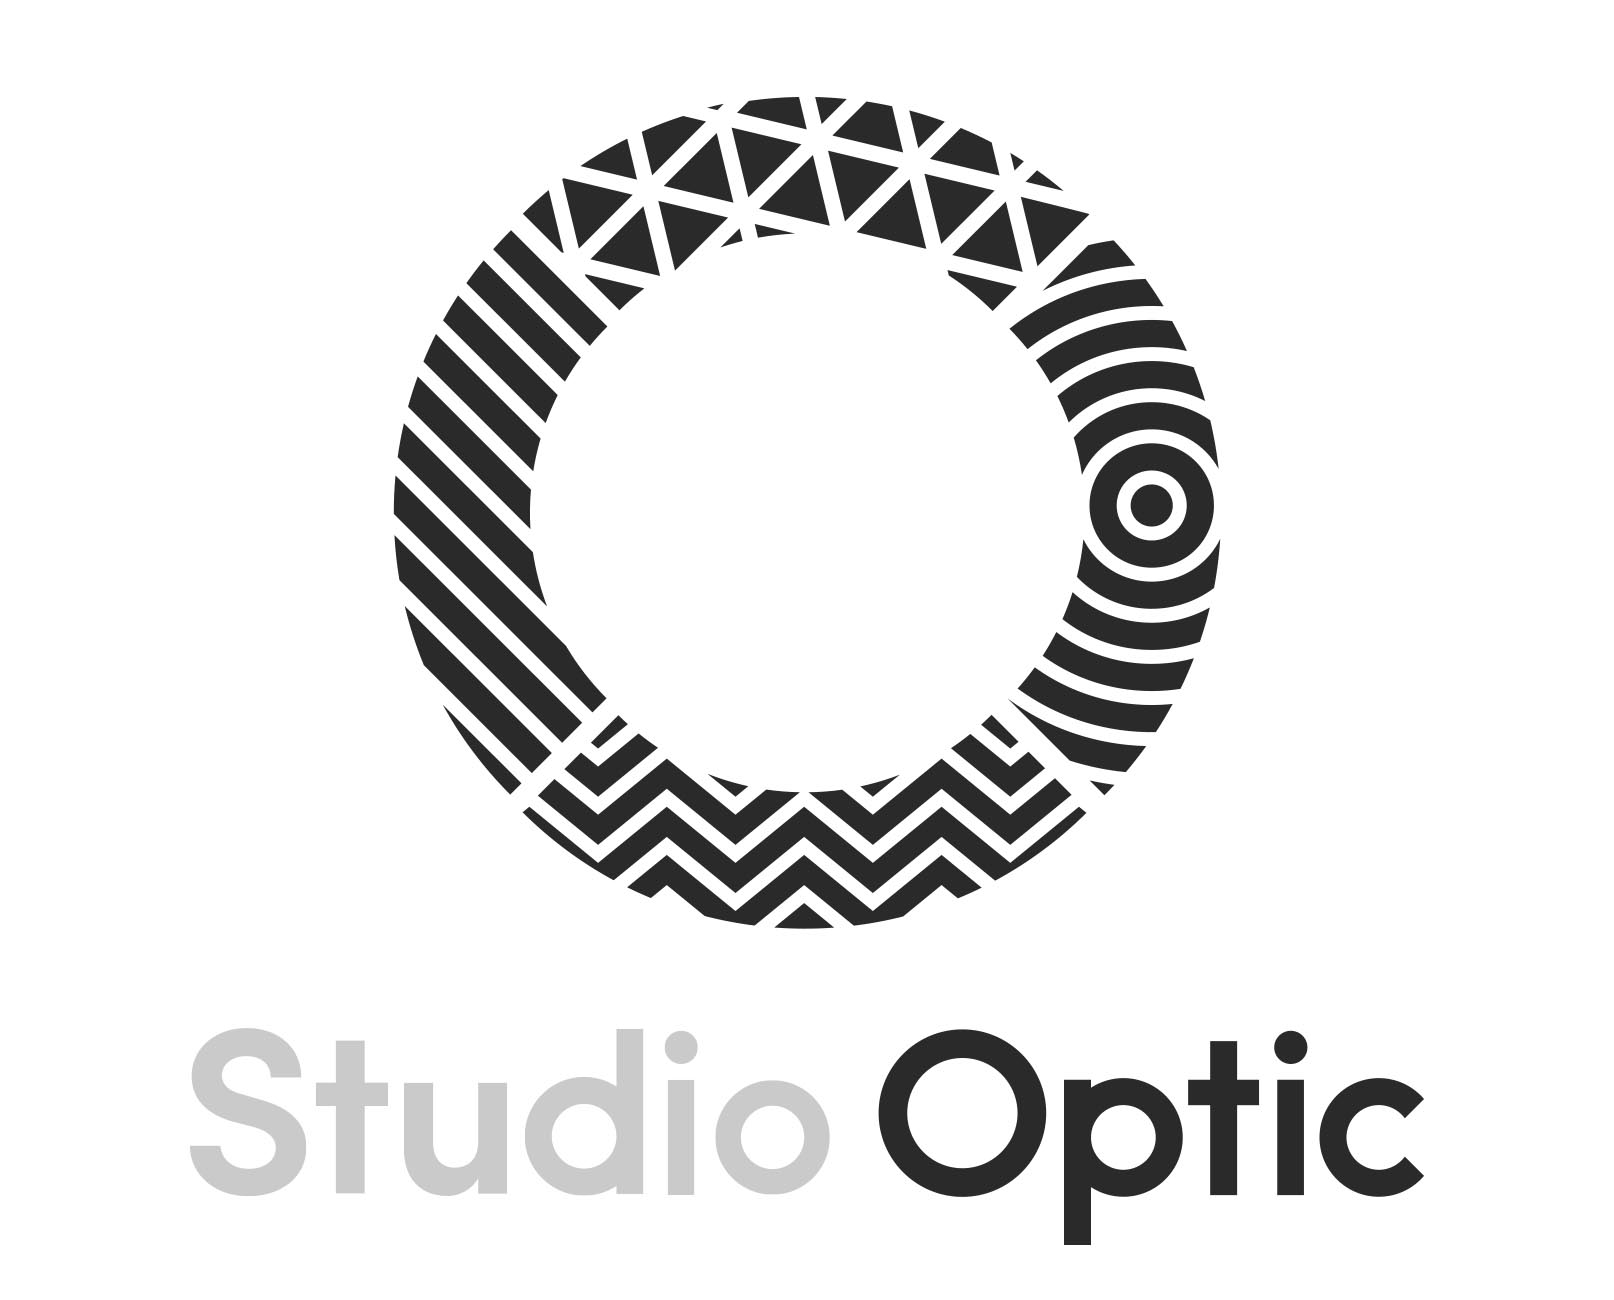 Studio Optic Logo_01.jpg